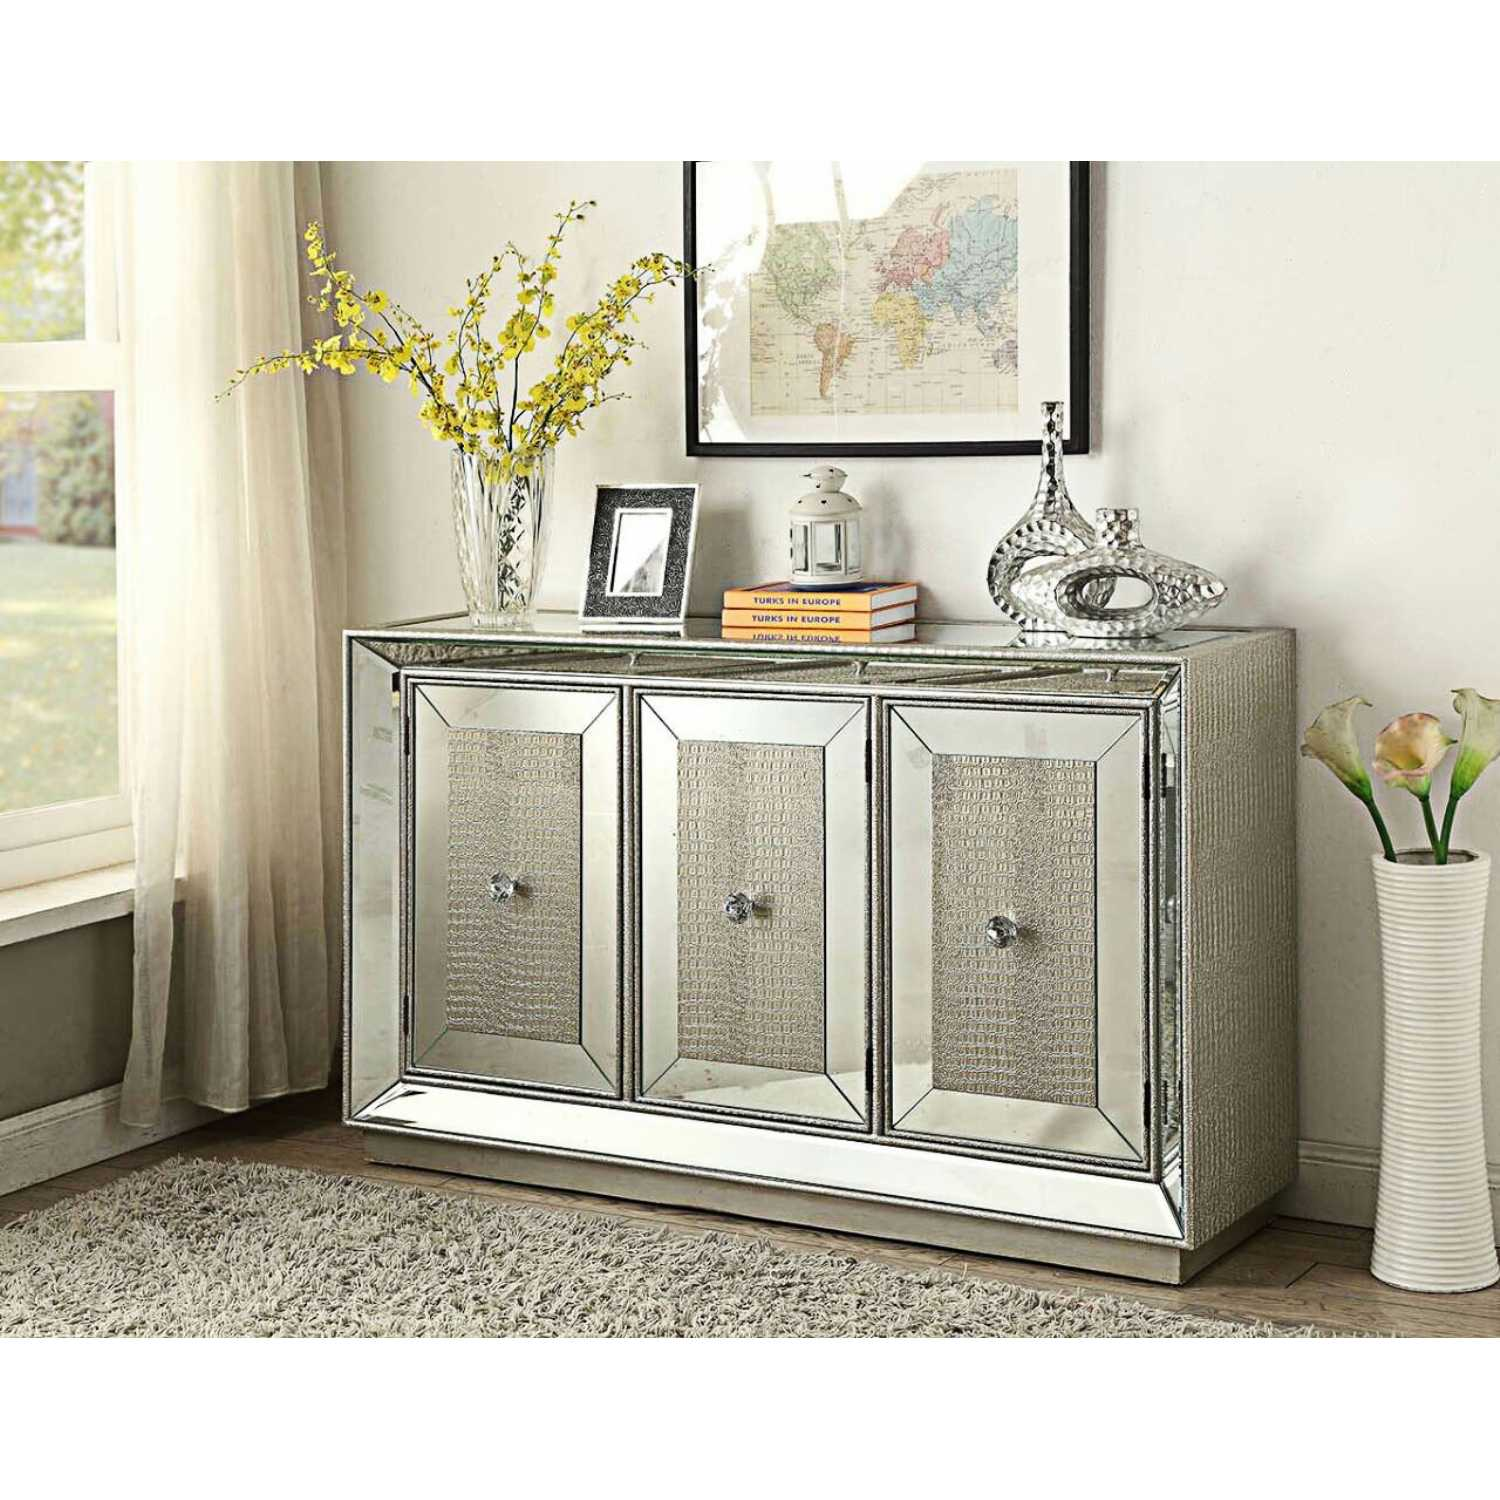 Sofia Modern Mirrored Glass 3 Door Sideboard With Silver